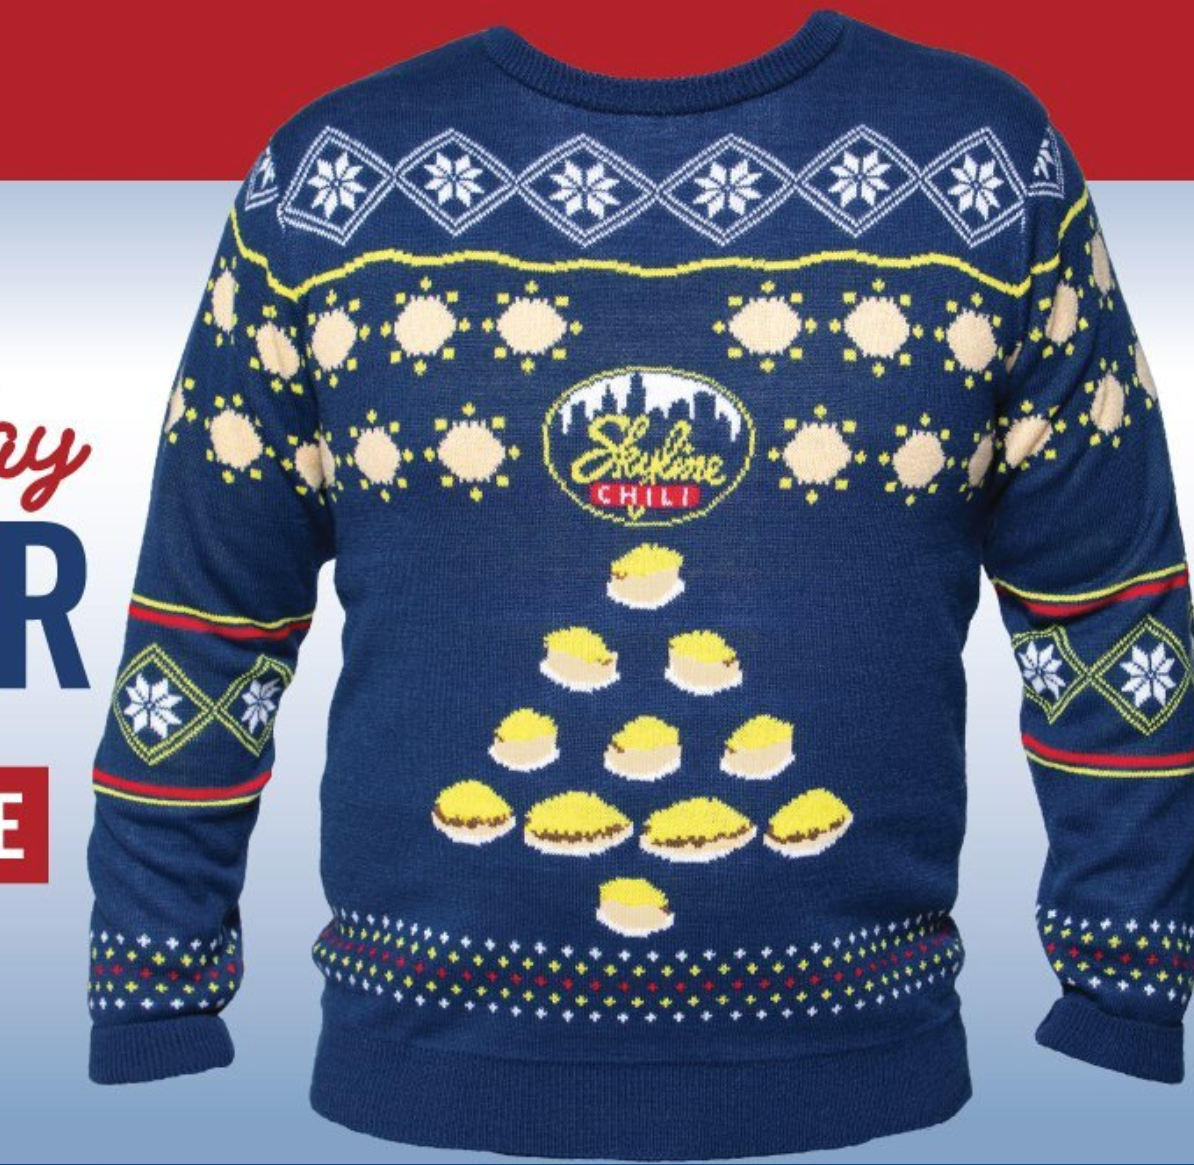 Skyline releases a chili sweater for chilly weather